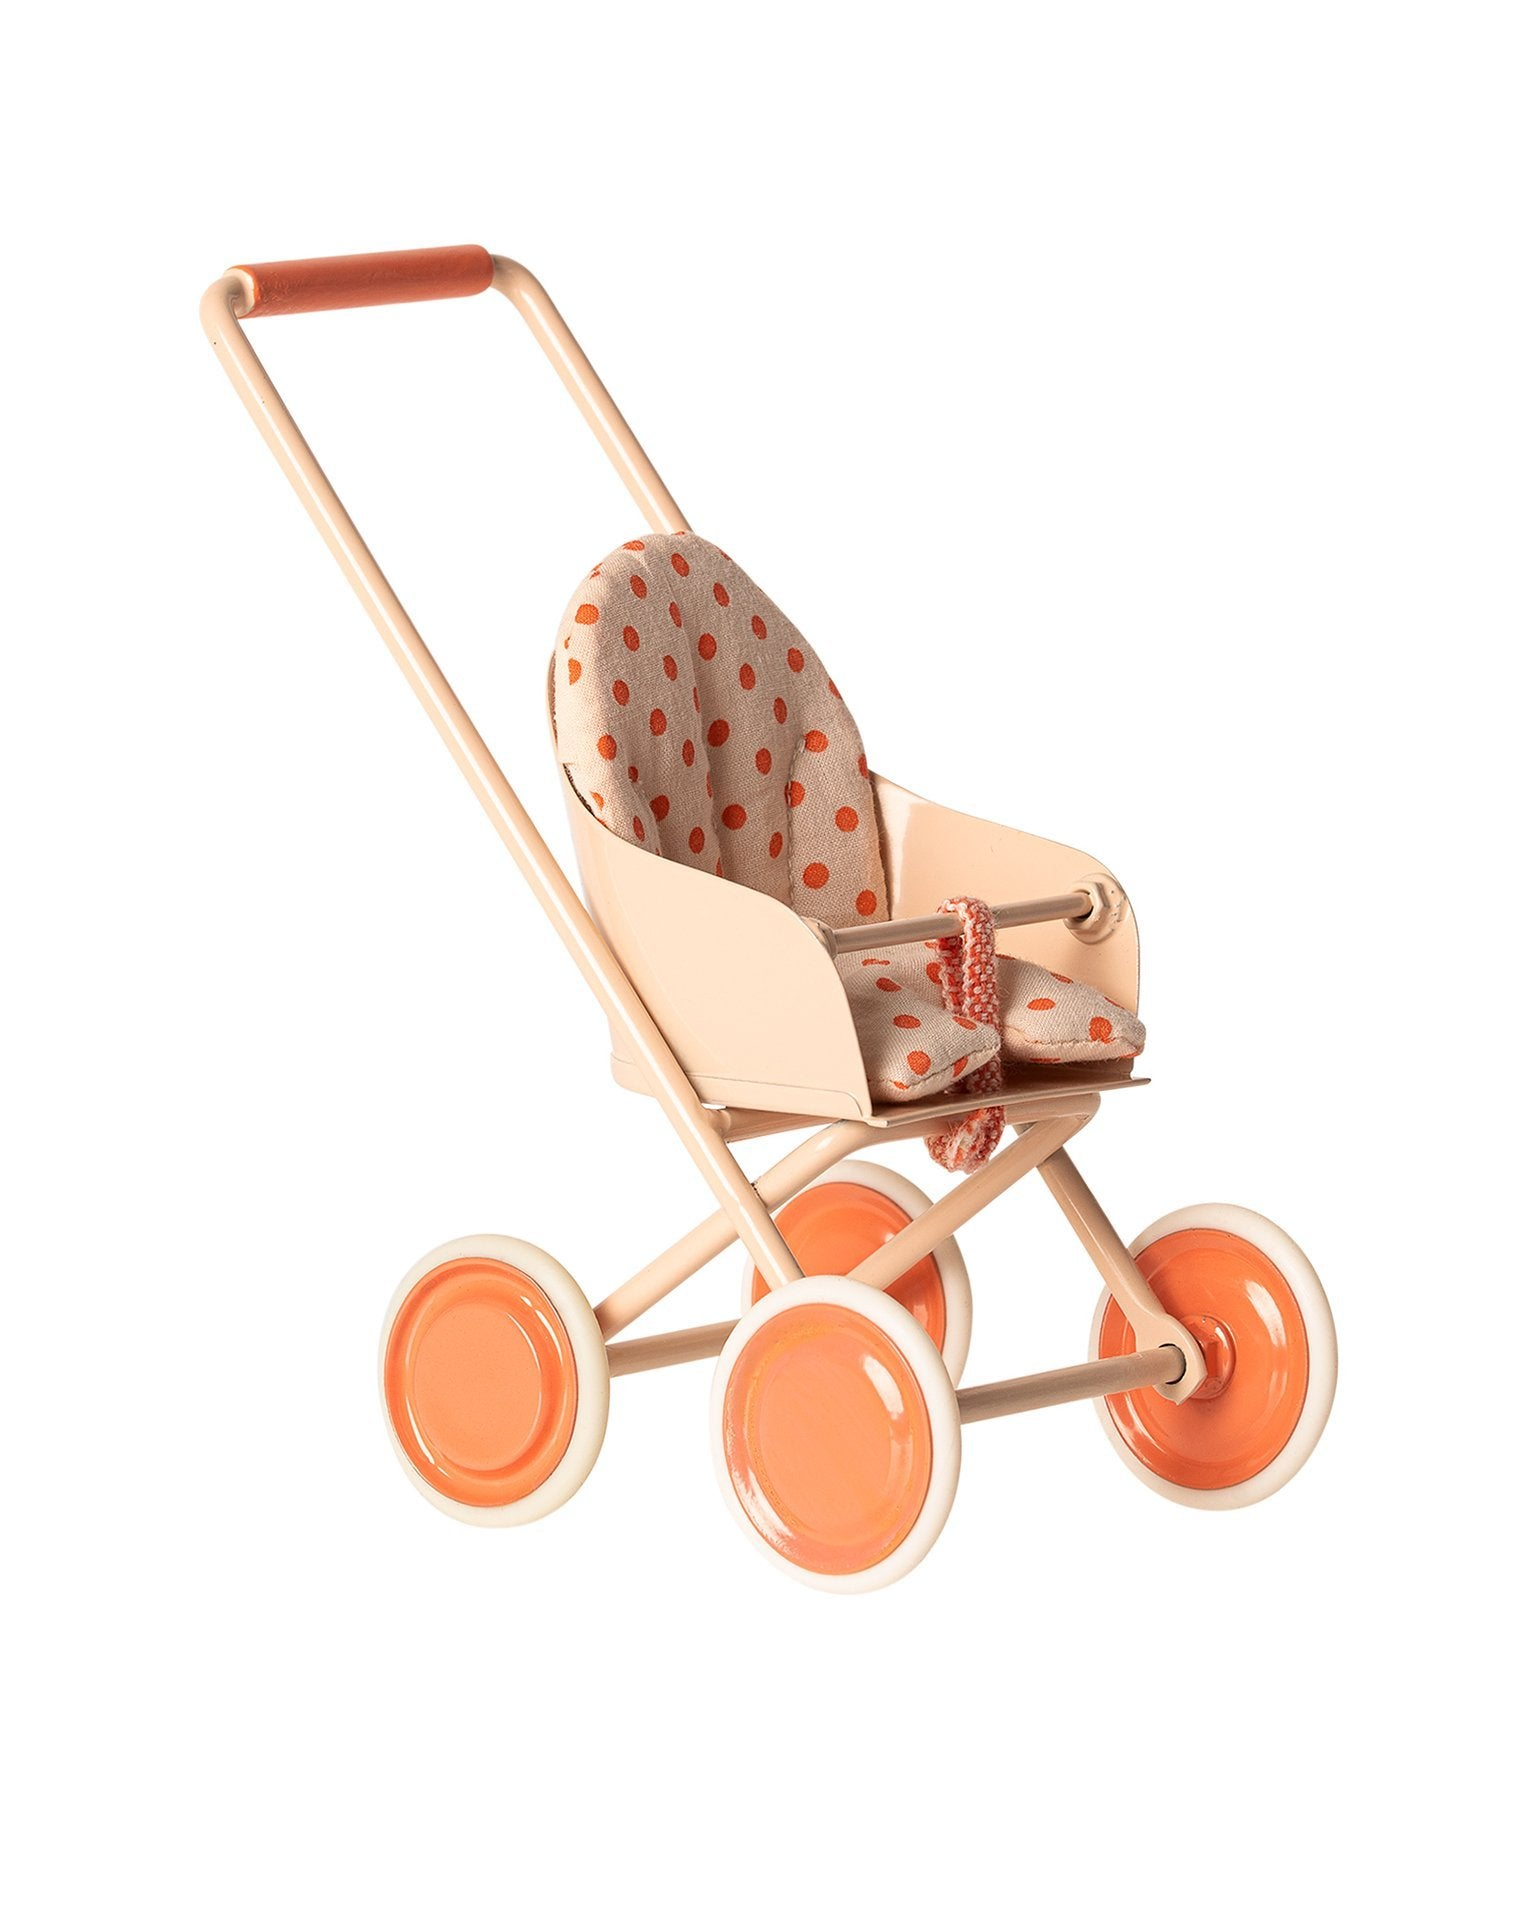 Little maileg play micro stroller in soft coral